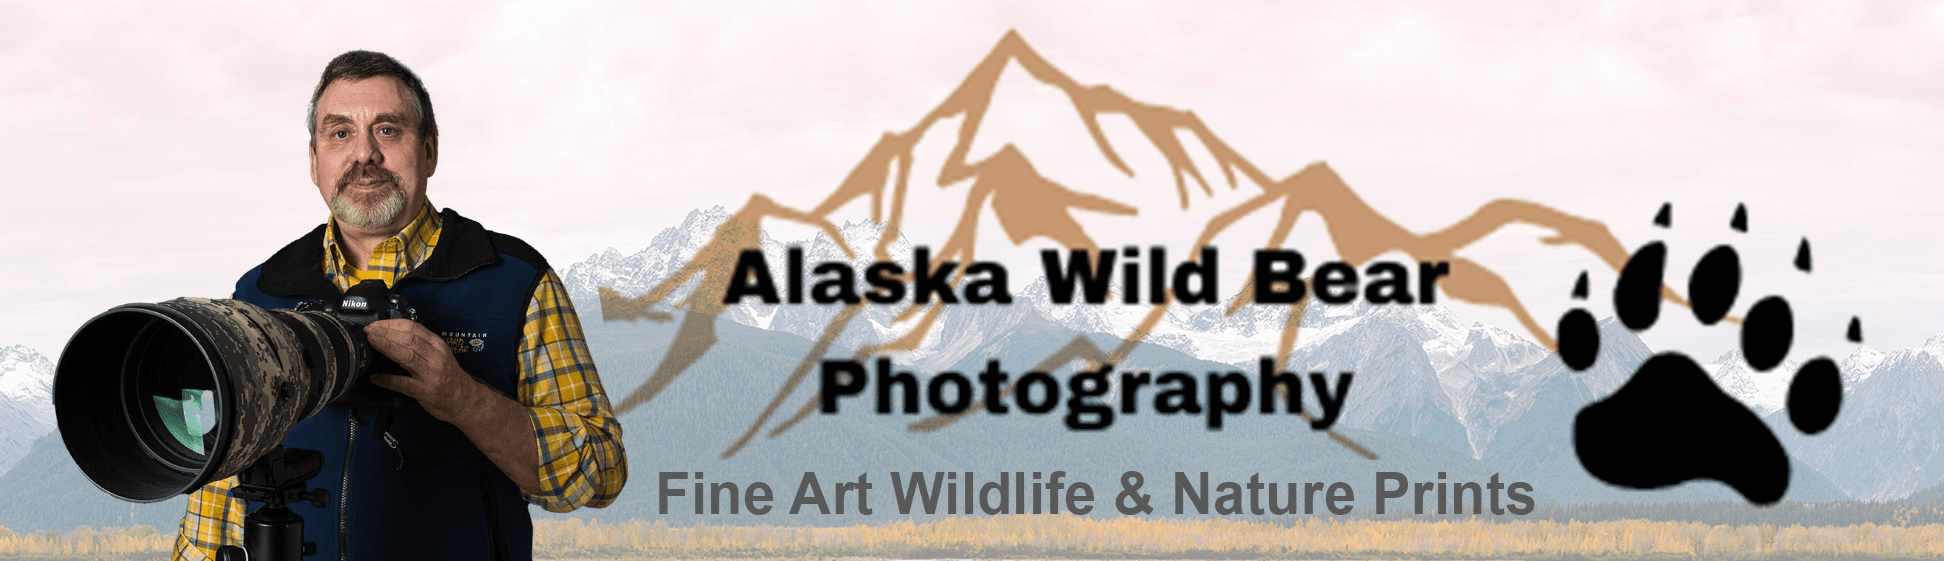 Alaska Wild Bear Photography - Fine Art Wildlife & Nature Prints